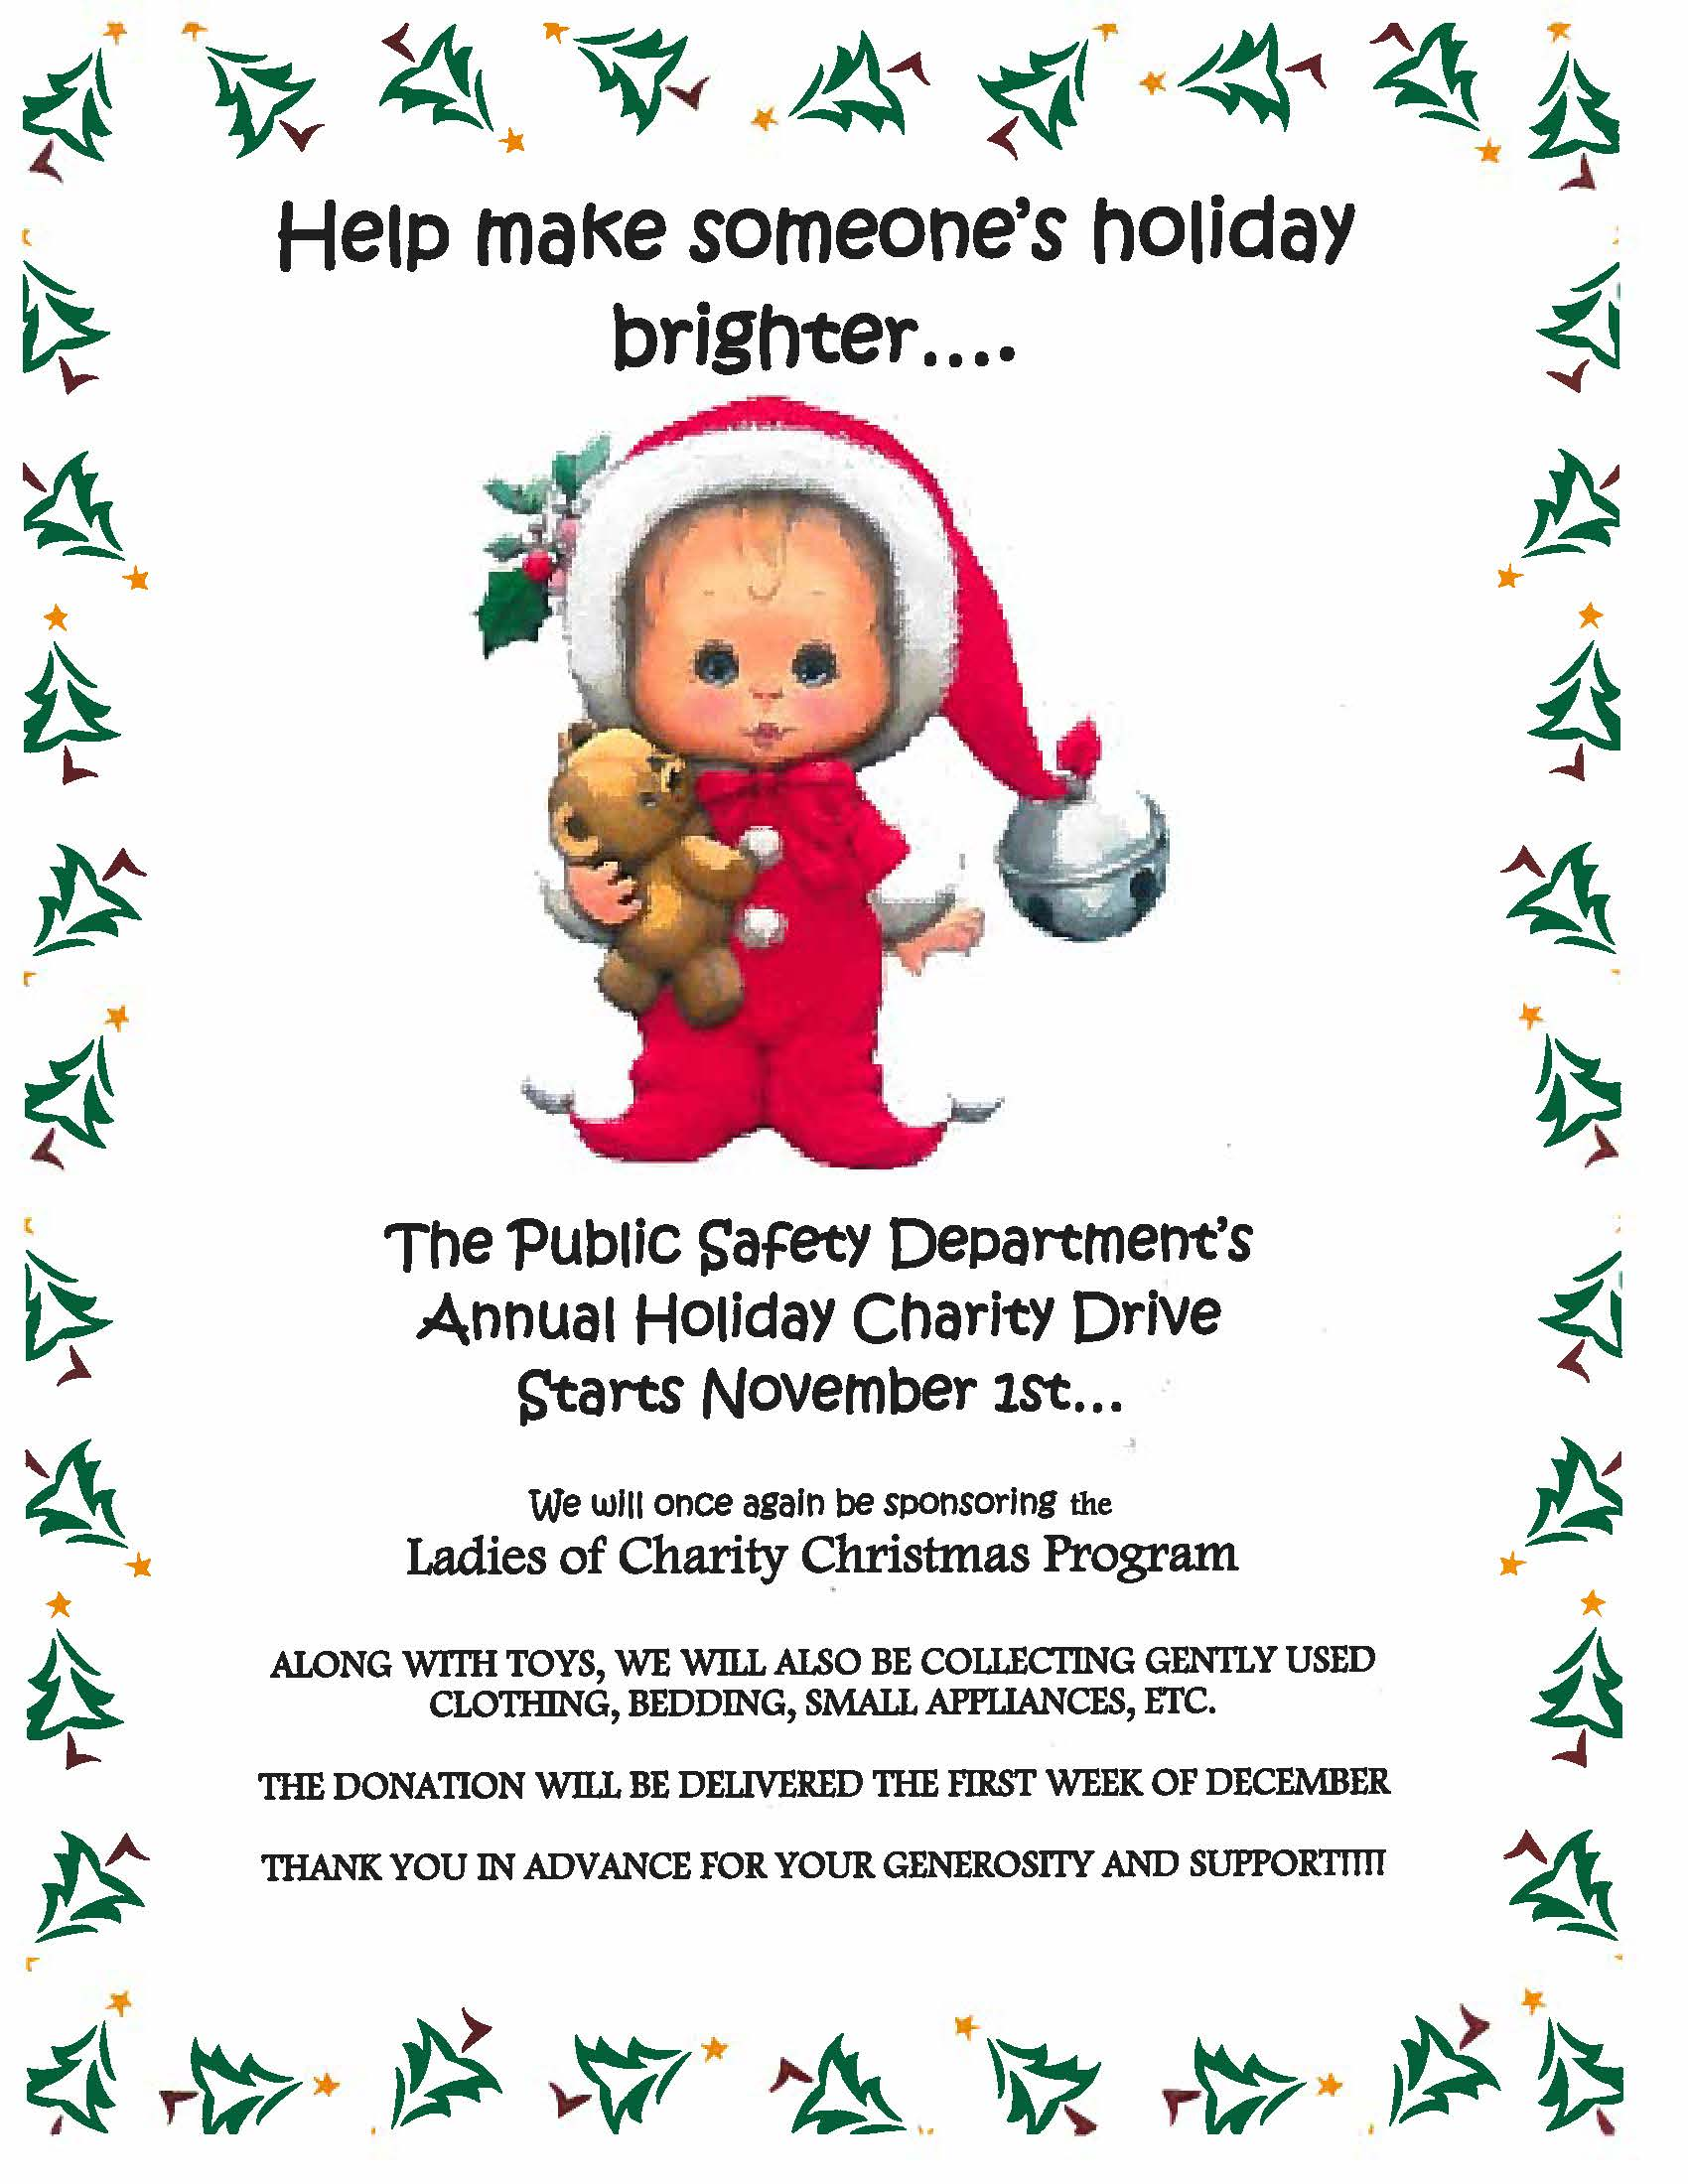 Christmas Gift Drive for Ladies of Charity | The Dome